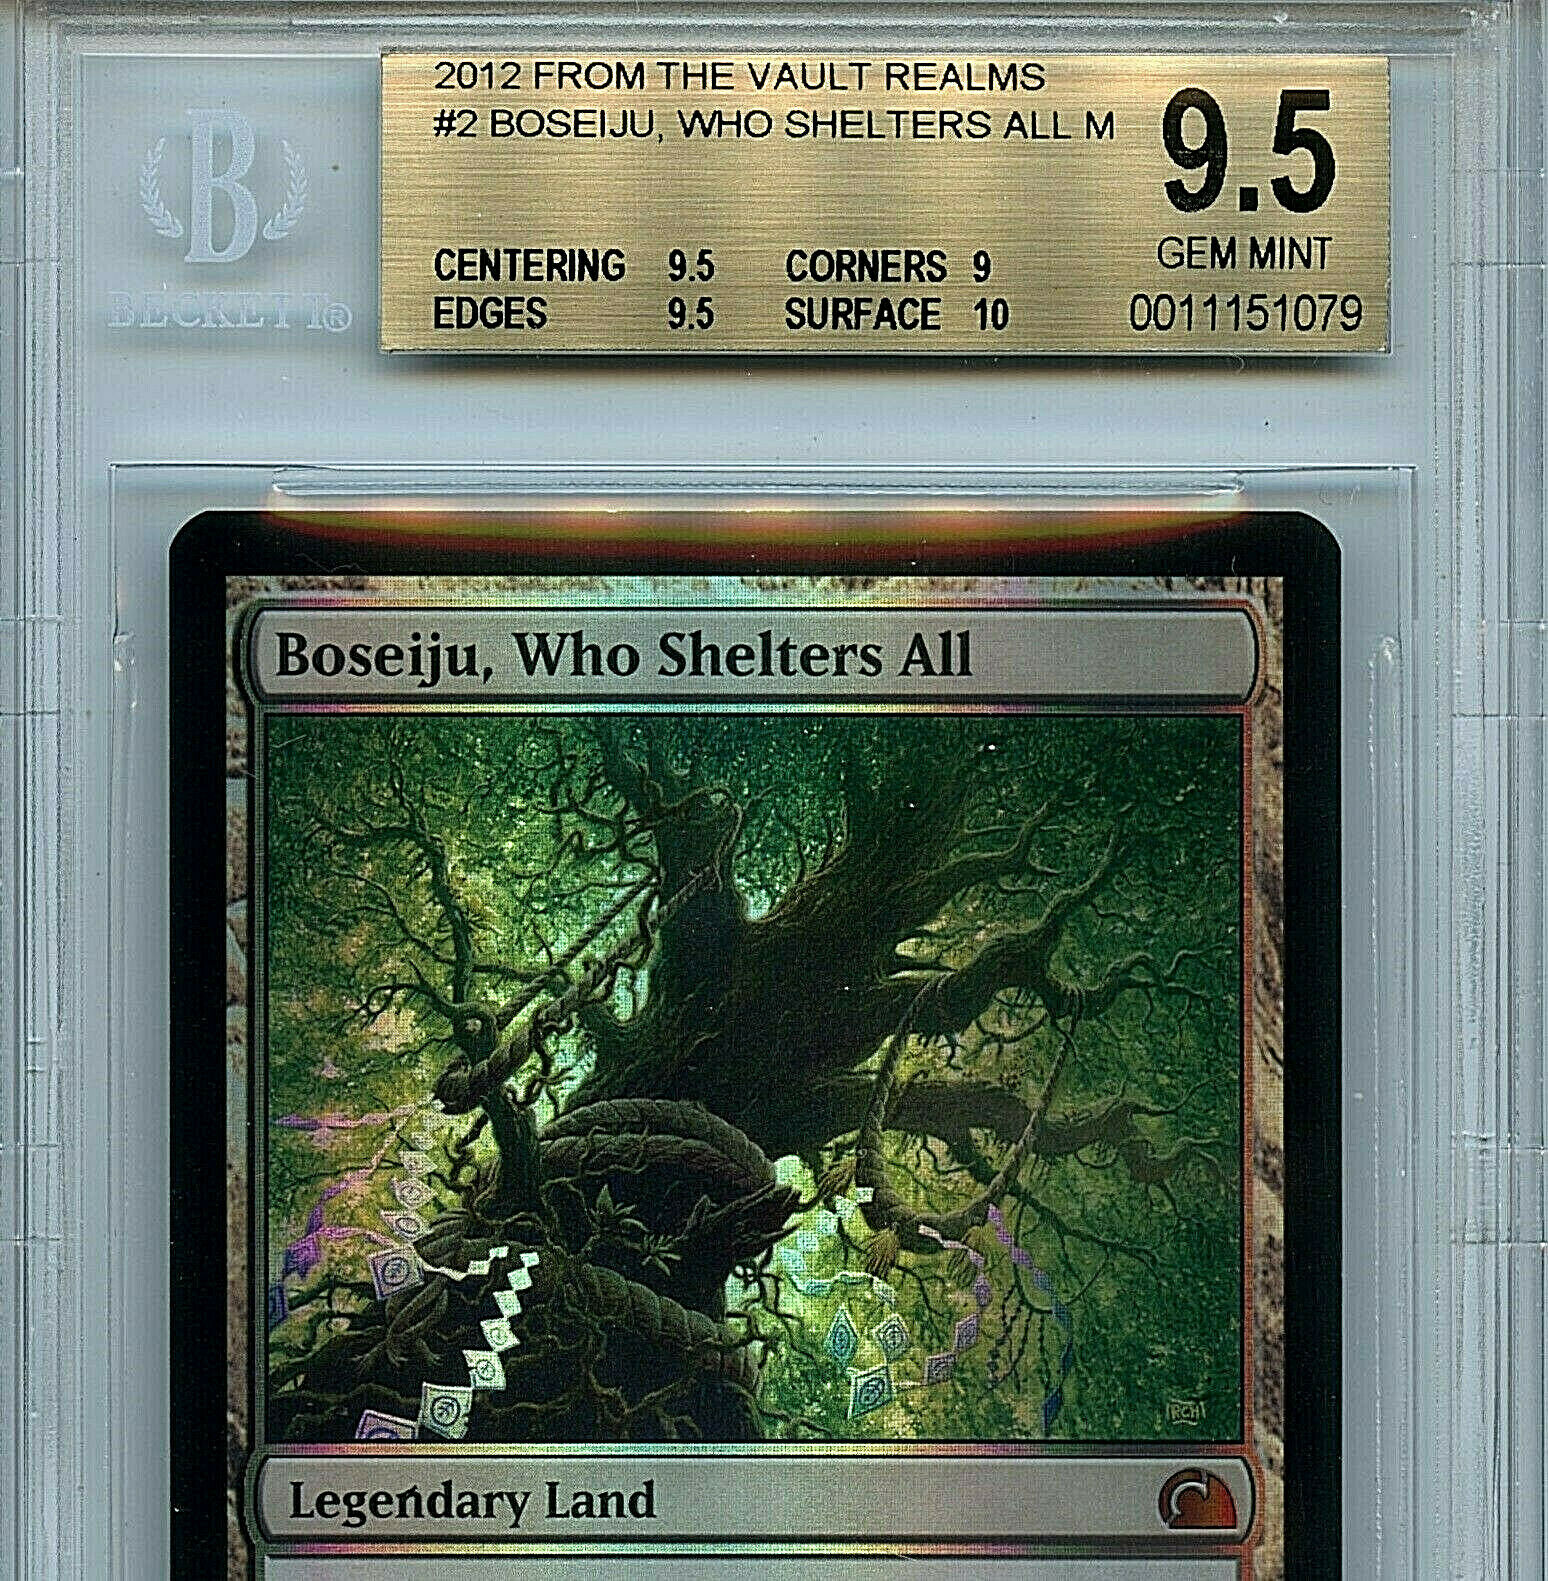 MTG Boseiju Who Who Who Shelters All BGS 9.5 FTV Realms Mystic Foil card Amricons1079 2988d0